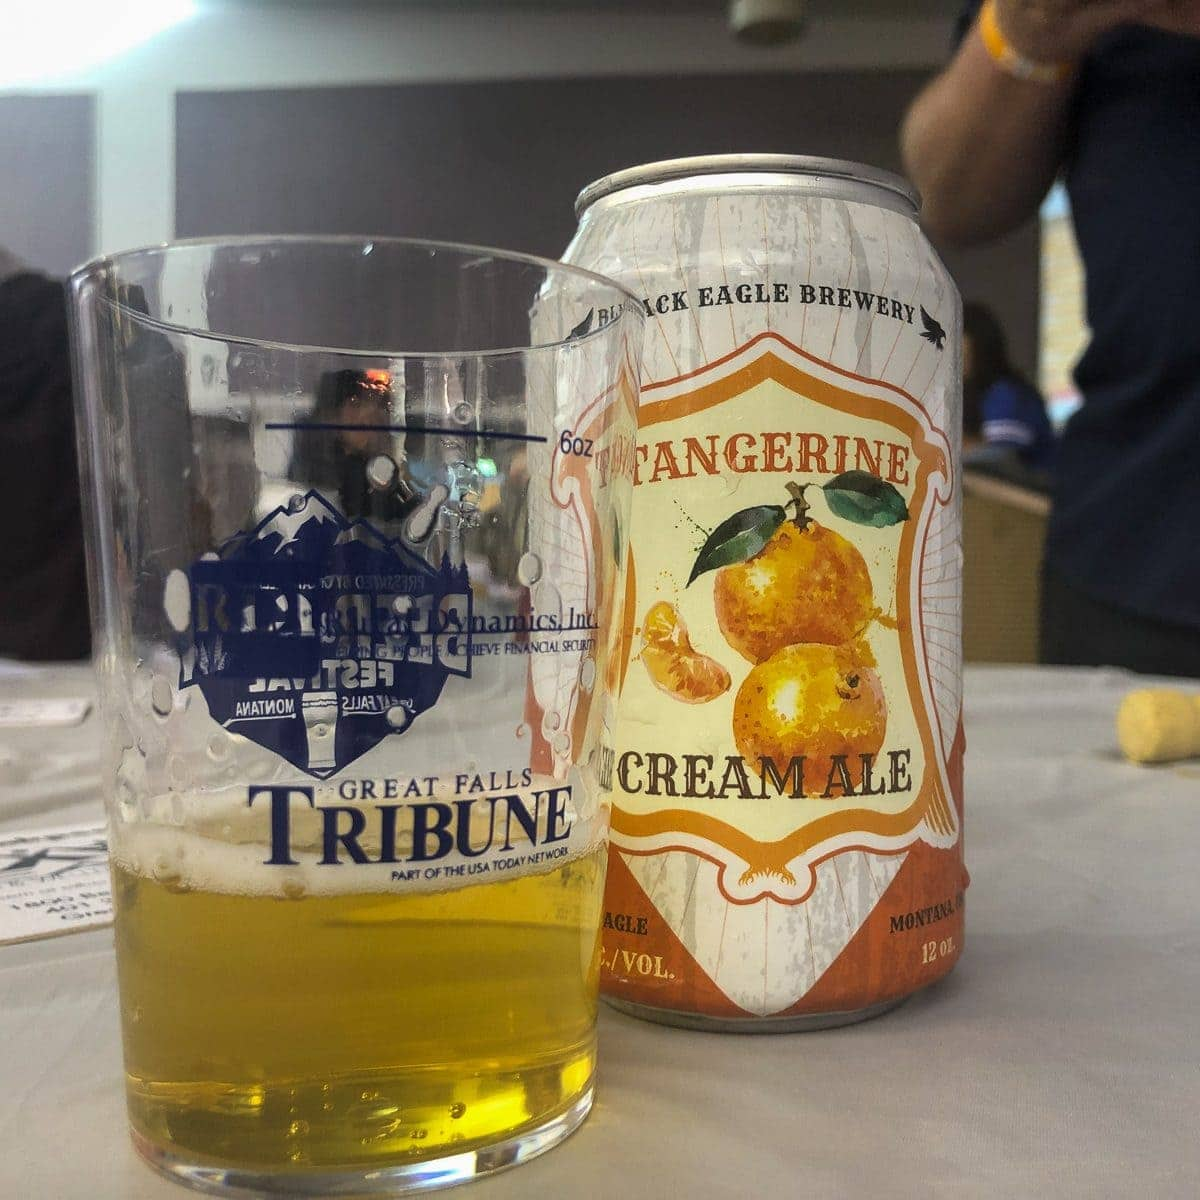 Tangerine Cream Ale from Black Eagle Brewery in Great Falls, MT